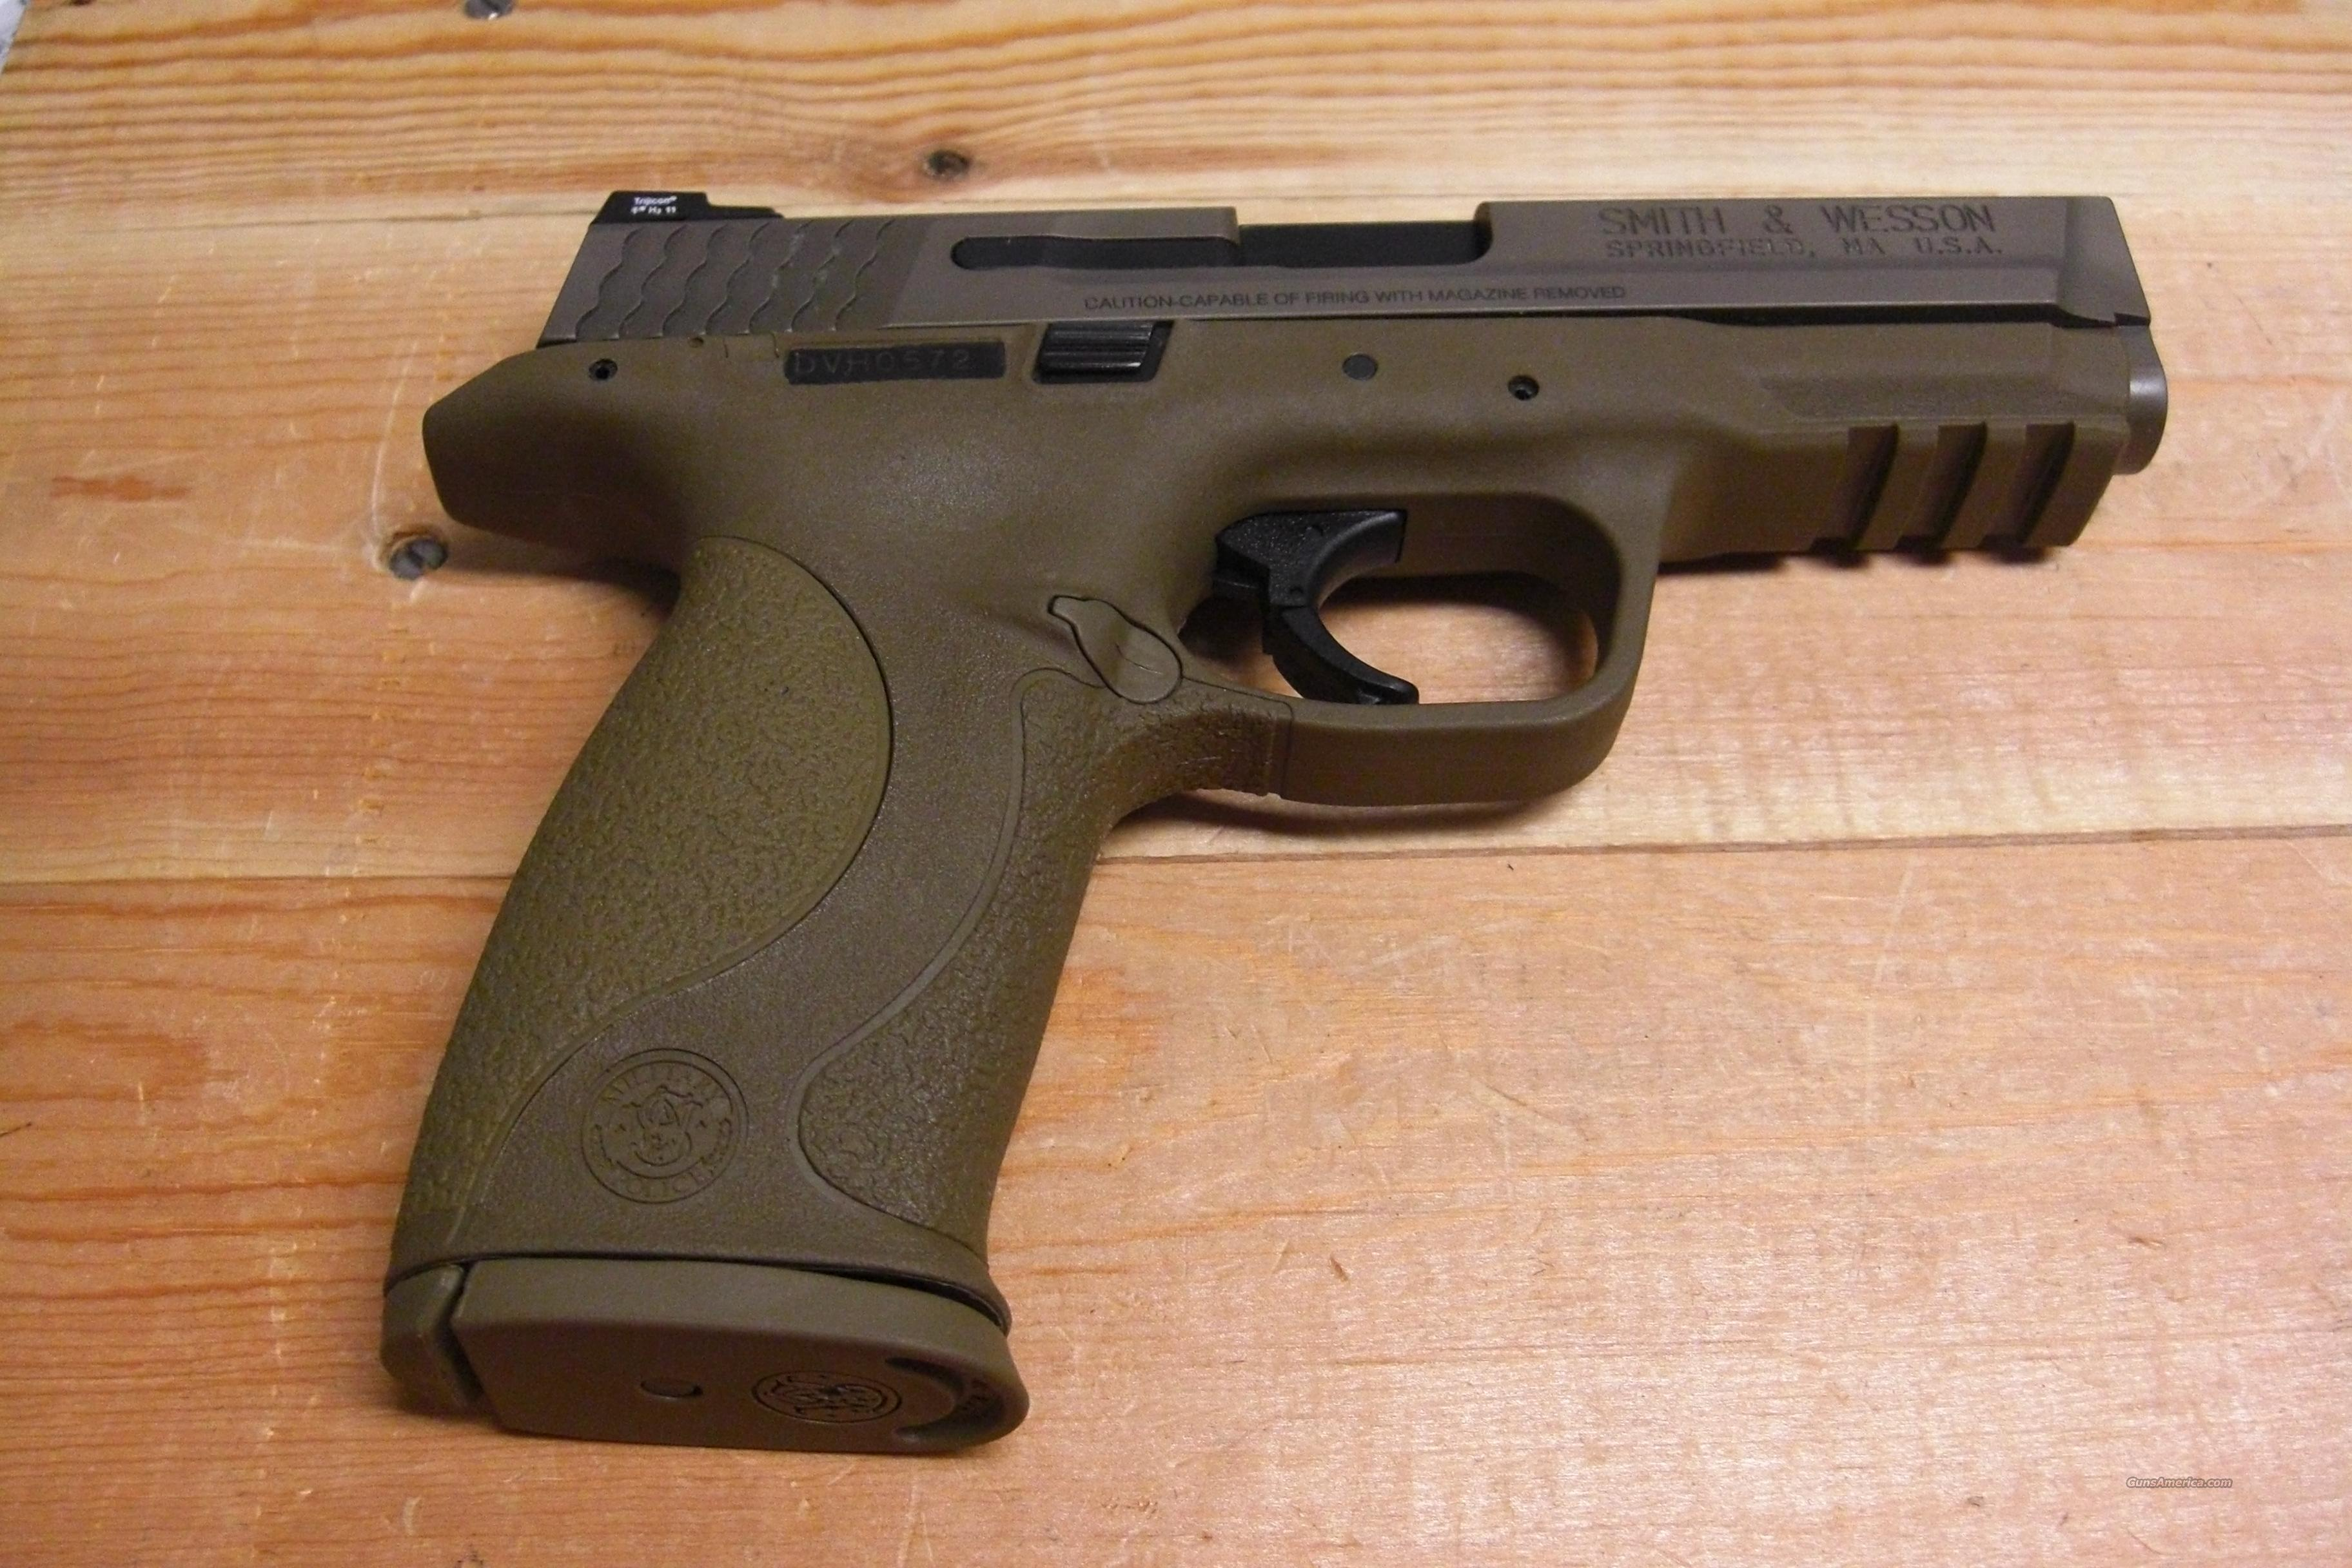 M & P 40  w/VTAC night sights  Guns > Pistols > Smith & Wesson Pistols - Autos > Polymer Frame